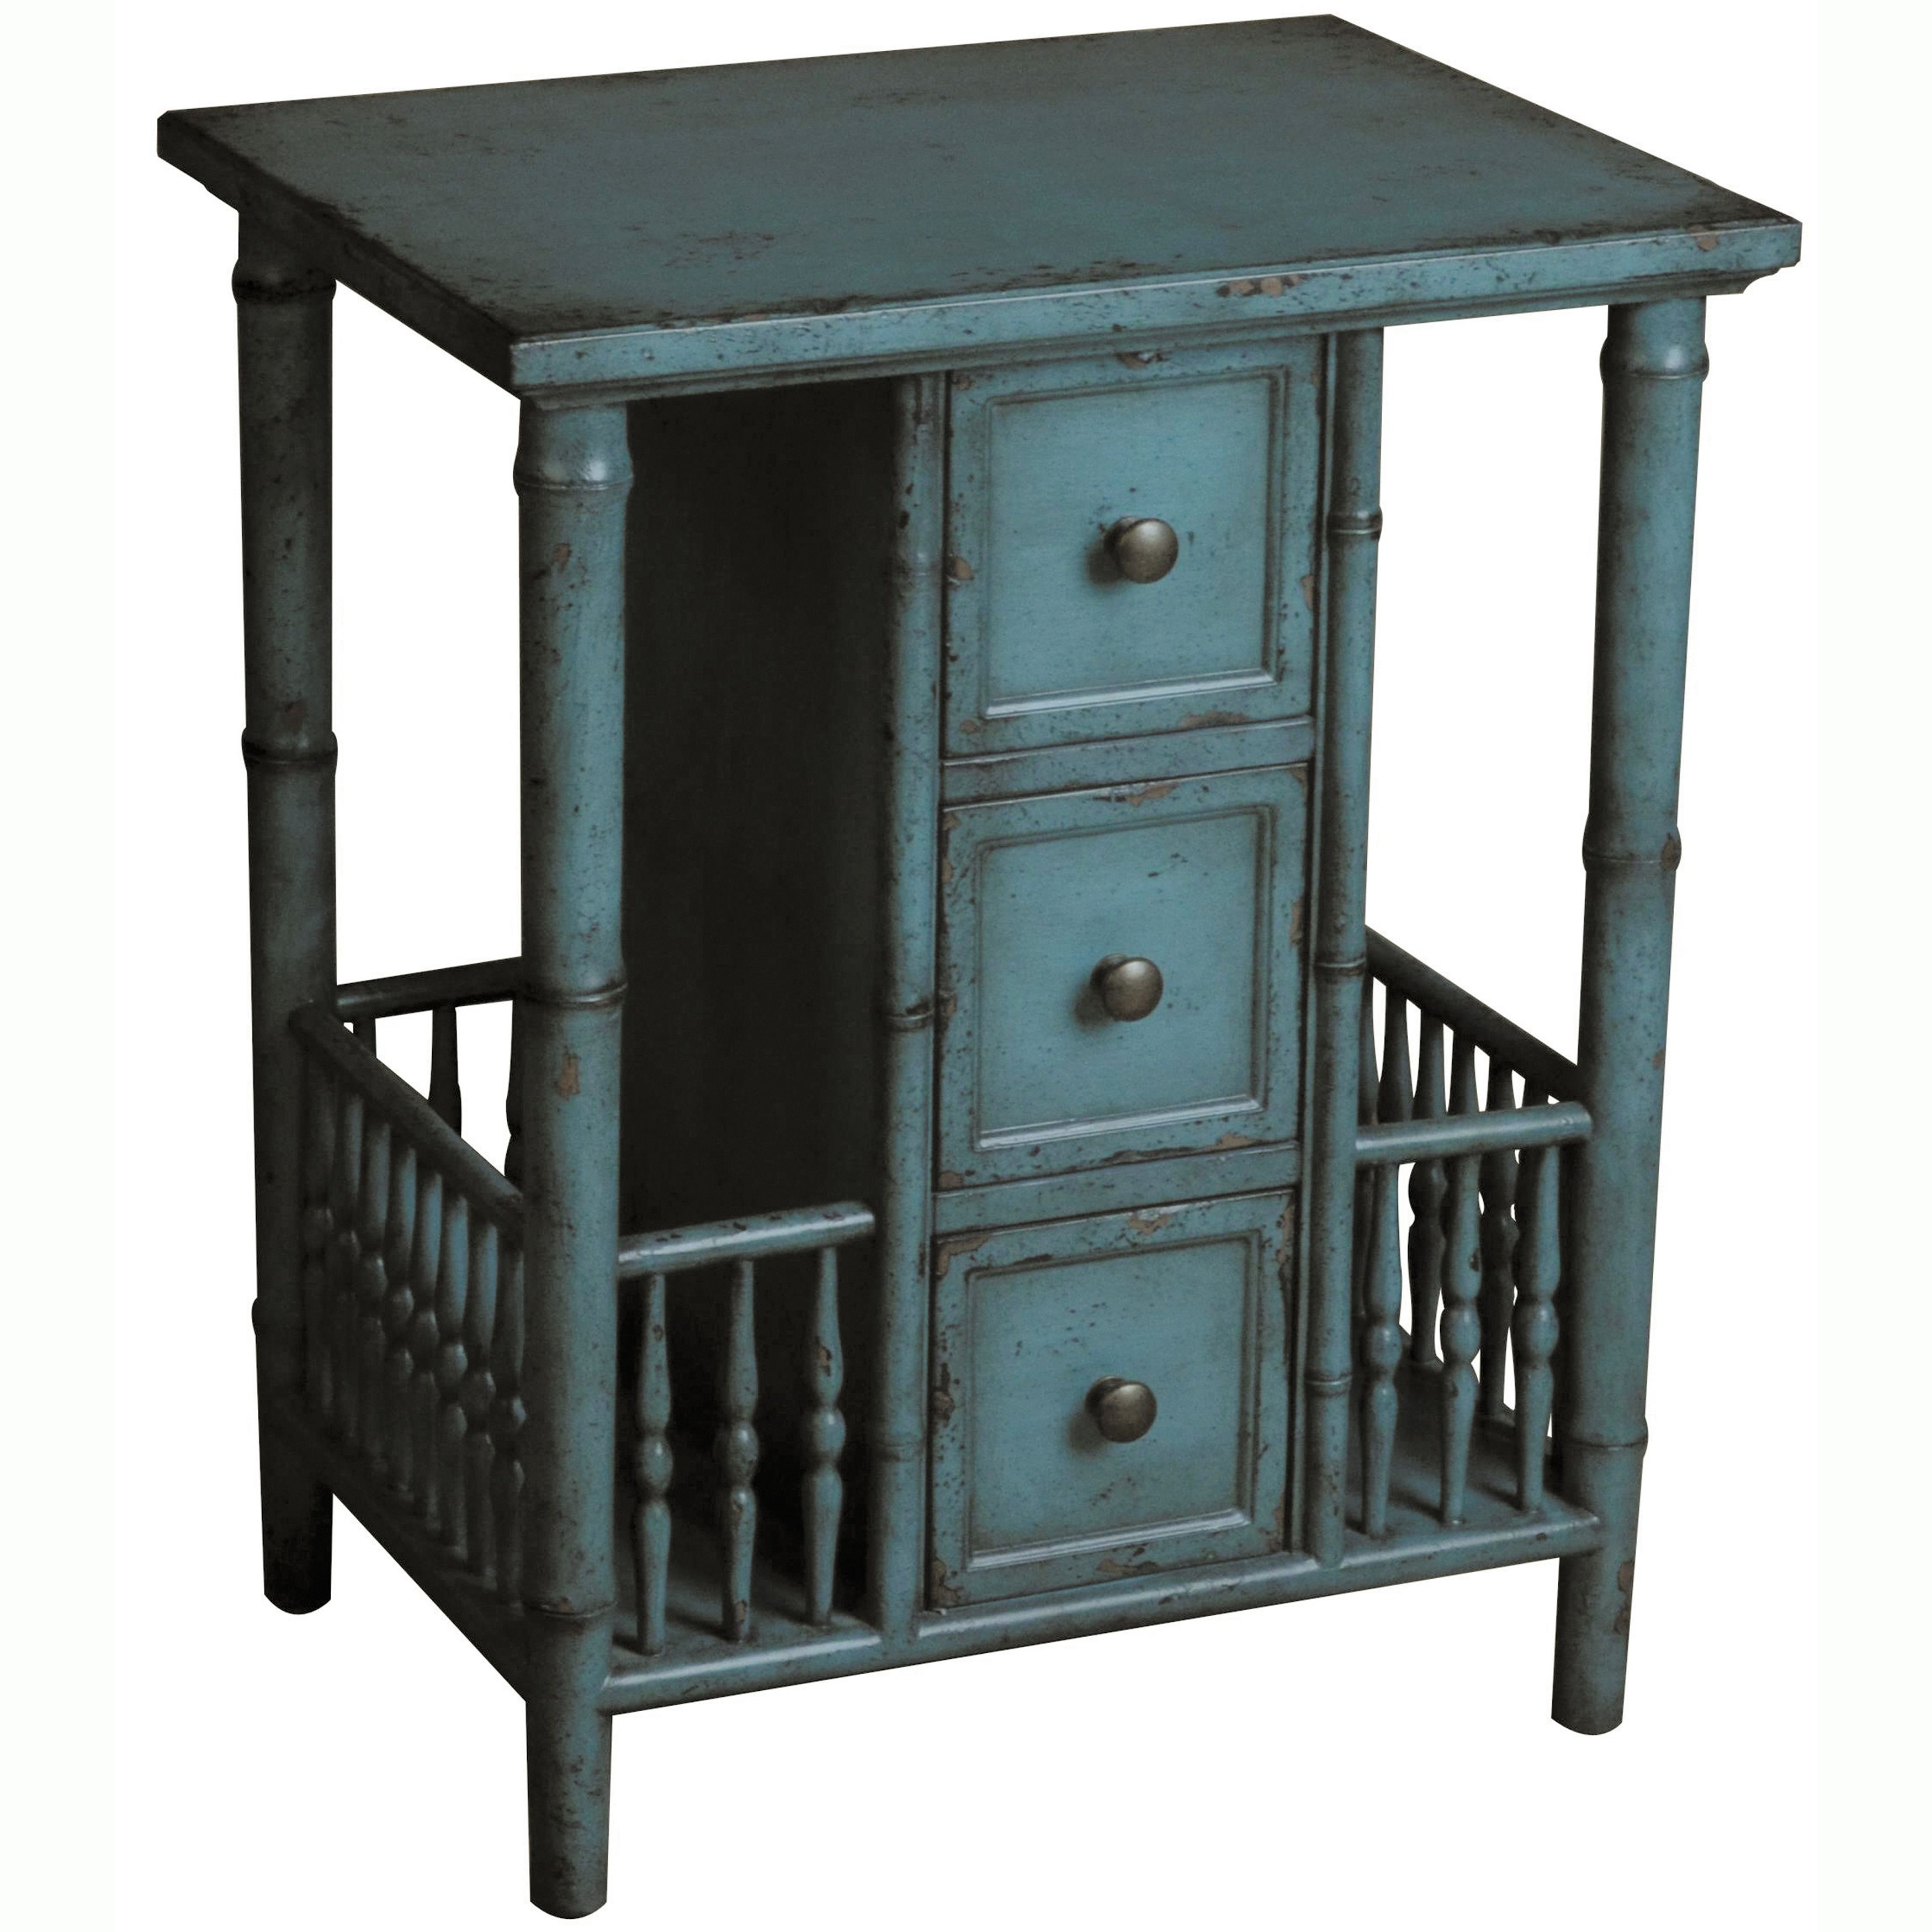 Give your home a rustic feel with this blue hand-painted table. This accent table features three functional drawers and distinctive open-railed sides for additional storage. Constructed from hardwood, this piece is durable as well as stylish.